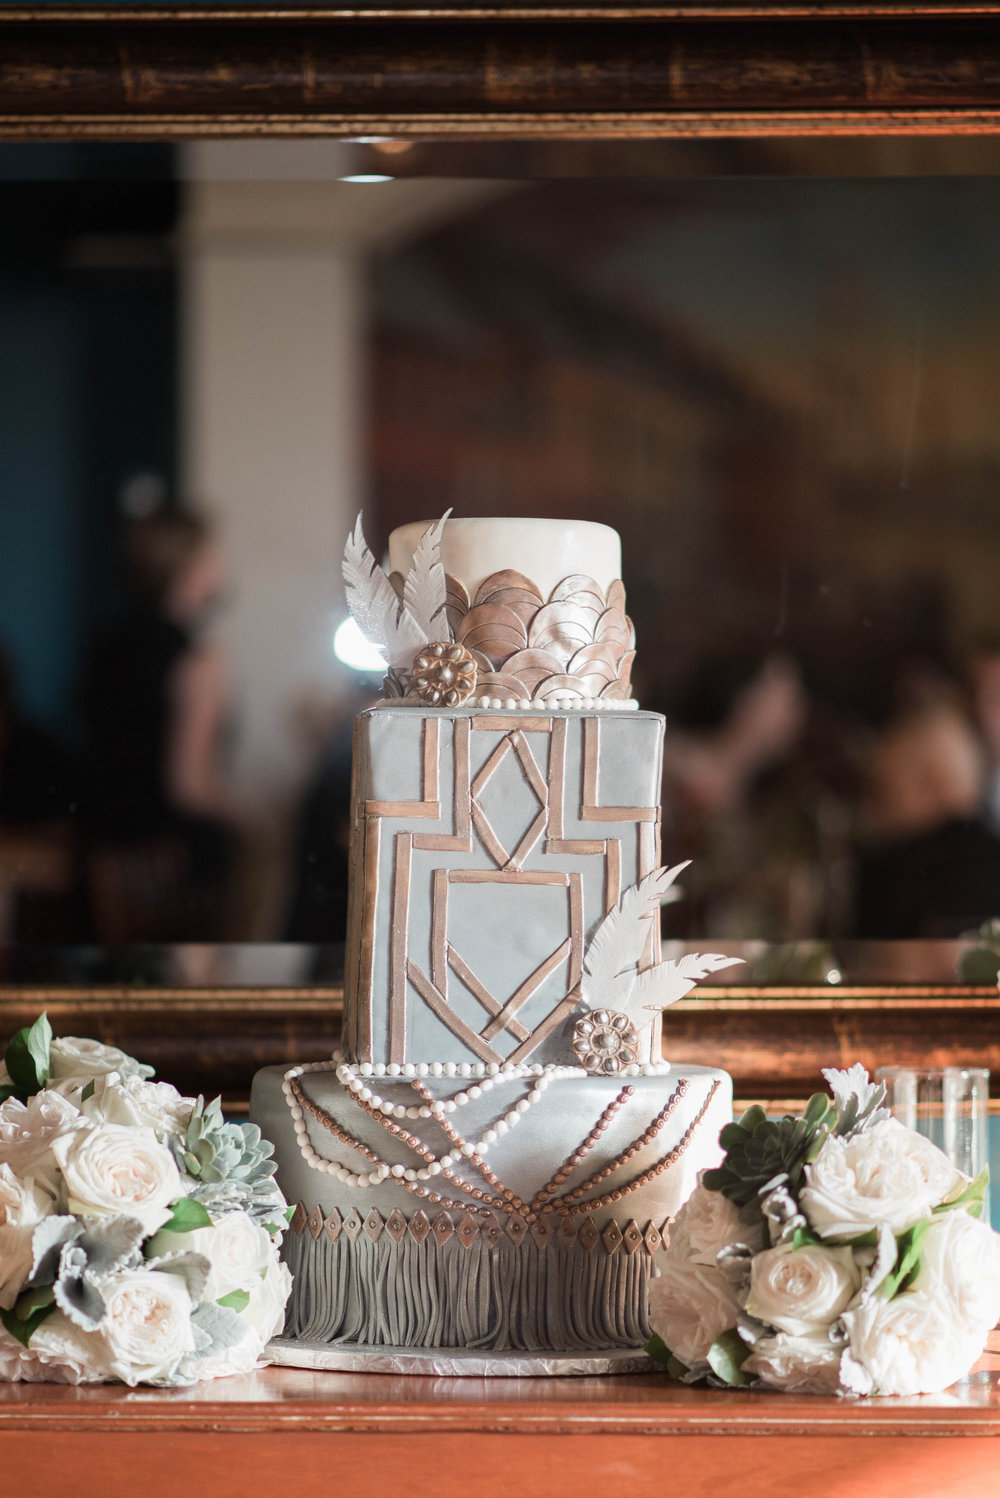 Wedding Cake | Maryland, Washington DC, Pennsylvania, Virginia Wedding Photographer | Anne Casey Photography